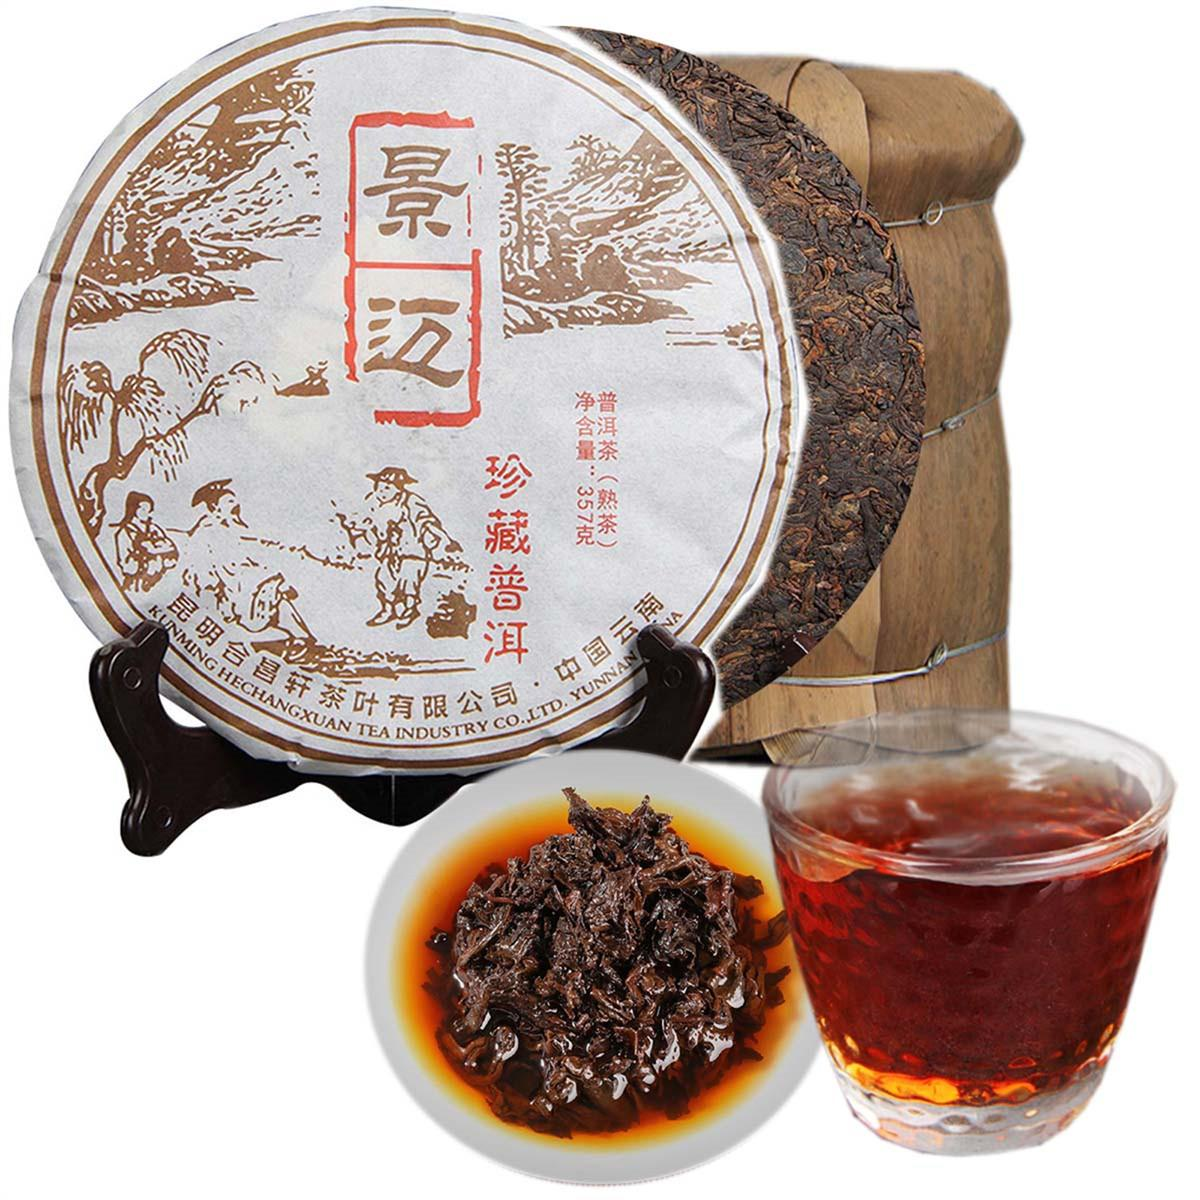 357g Yunnan Jingmai Treasure Collection Ripe Puer Tea Cake Organic Natural Pu'er Oldest Tree Cooked Puer Black Puerh Preference Green Food